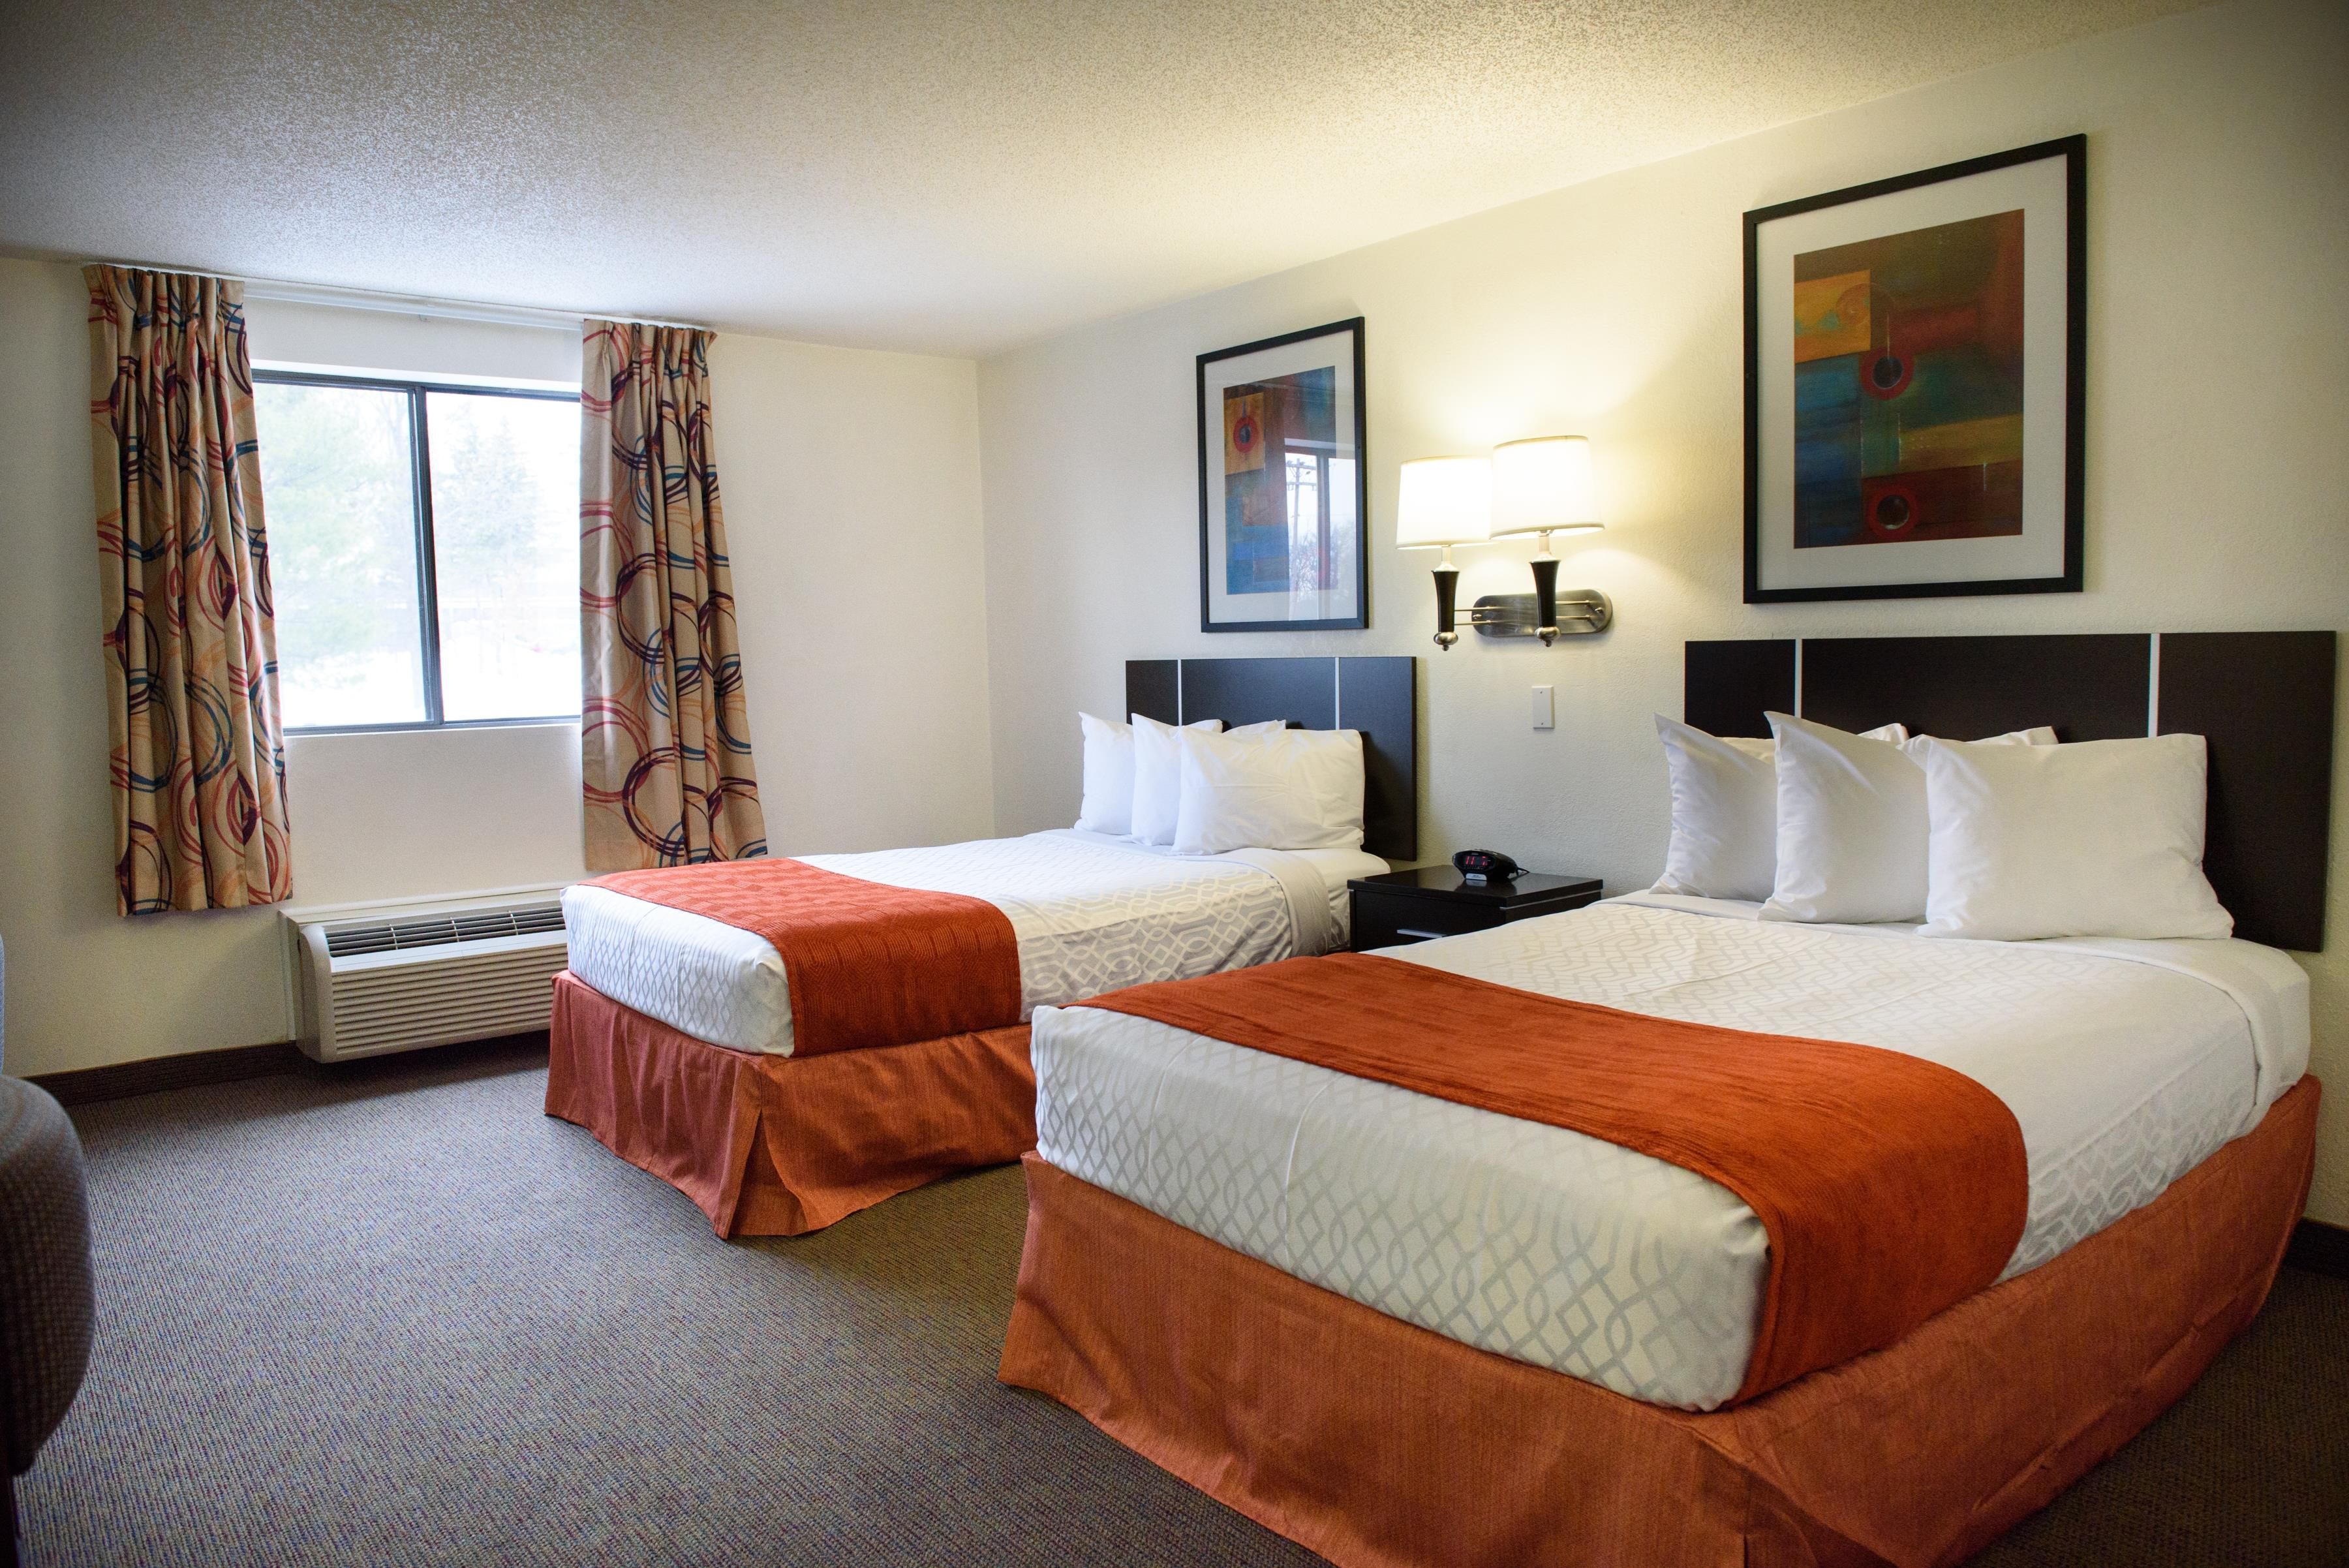 Americas Best Value Inn - New Paltz image 12